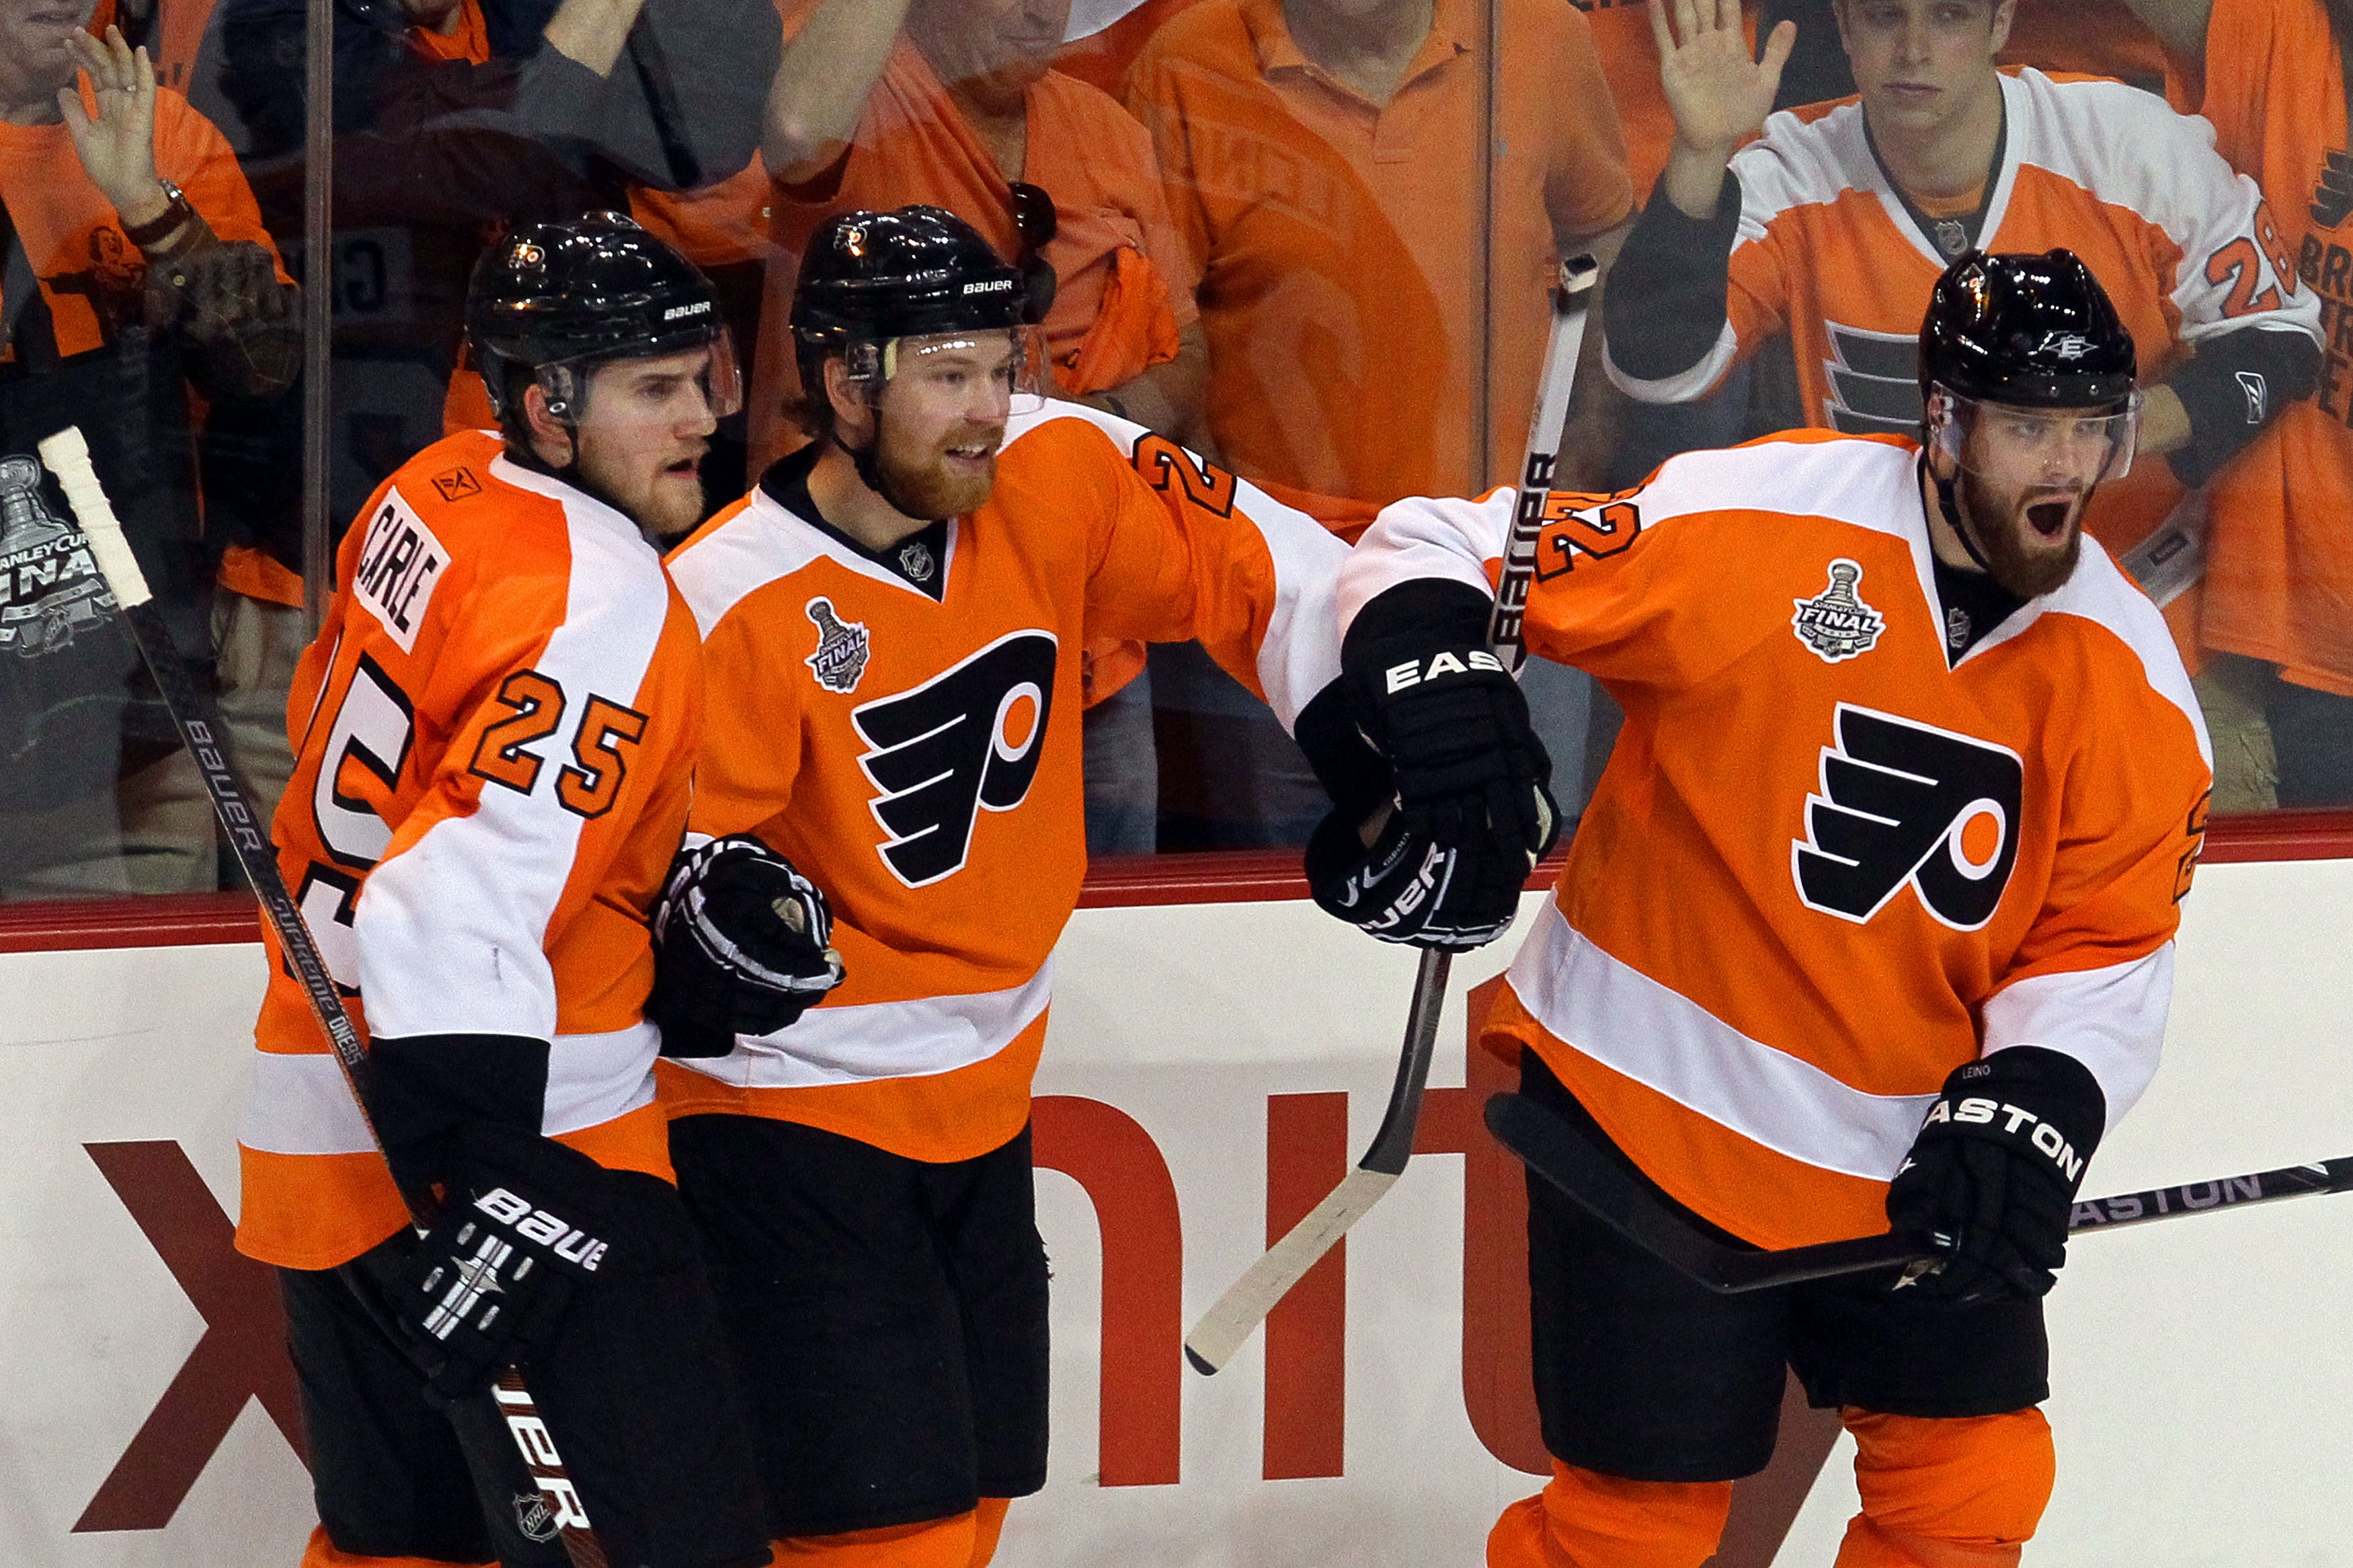 PHILADELPHIA - JUNE 02:  Ville Leino #22 of the Philadelphia Flyers celebrates with teammates Matt Carle #25 and Claude Giroux #28 after scoring a goal in the third period against the Chicago Blackhawks in Game Three of the 2010 NHL Stanley Cup Final at W